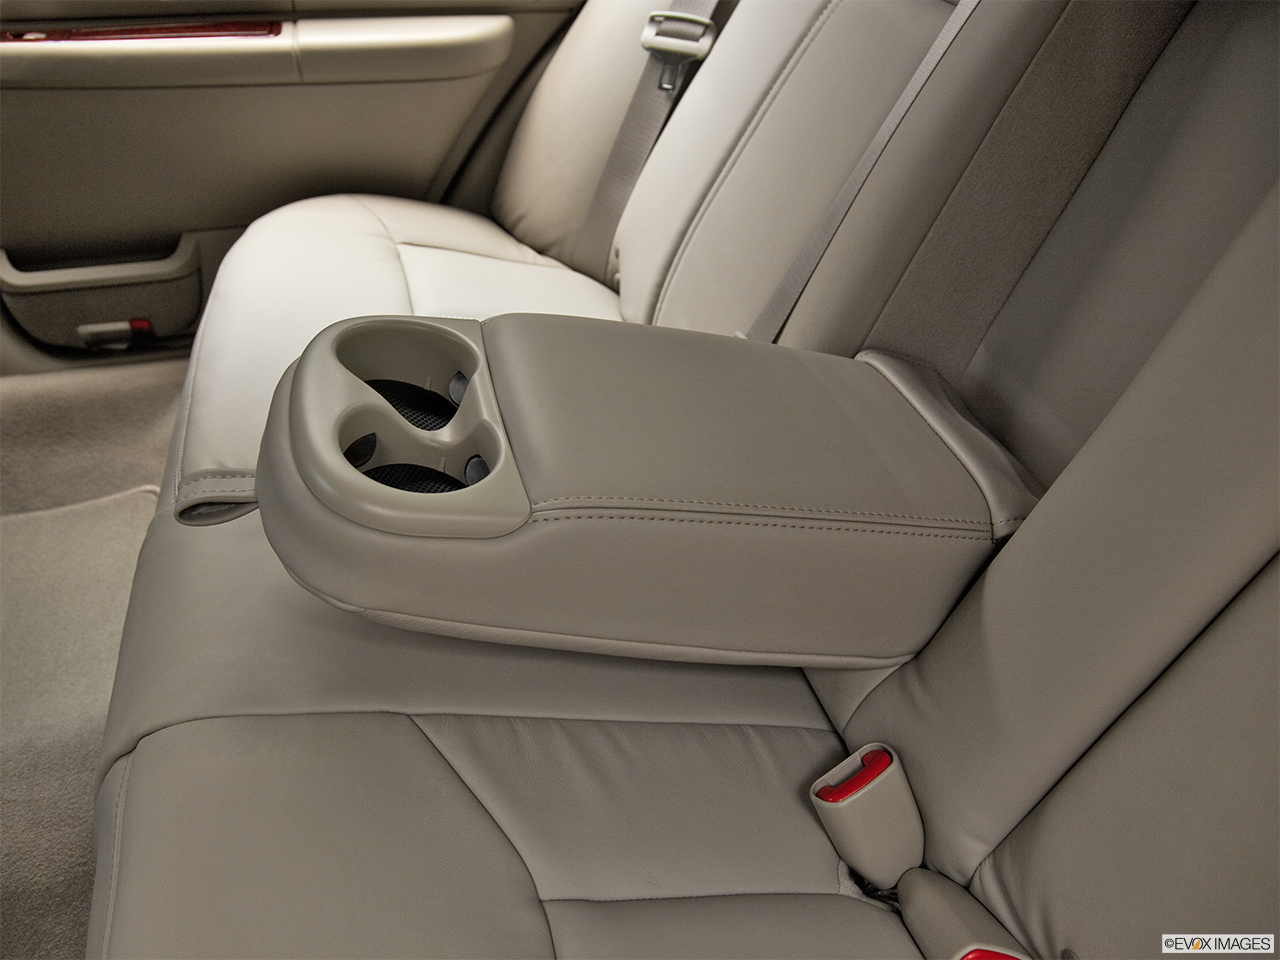 2011 Lincoln Town Car Signature Limited Rear center console with closed lid from driver's side looking down.